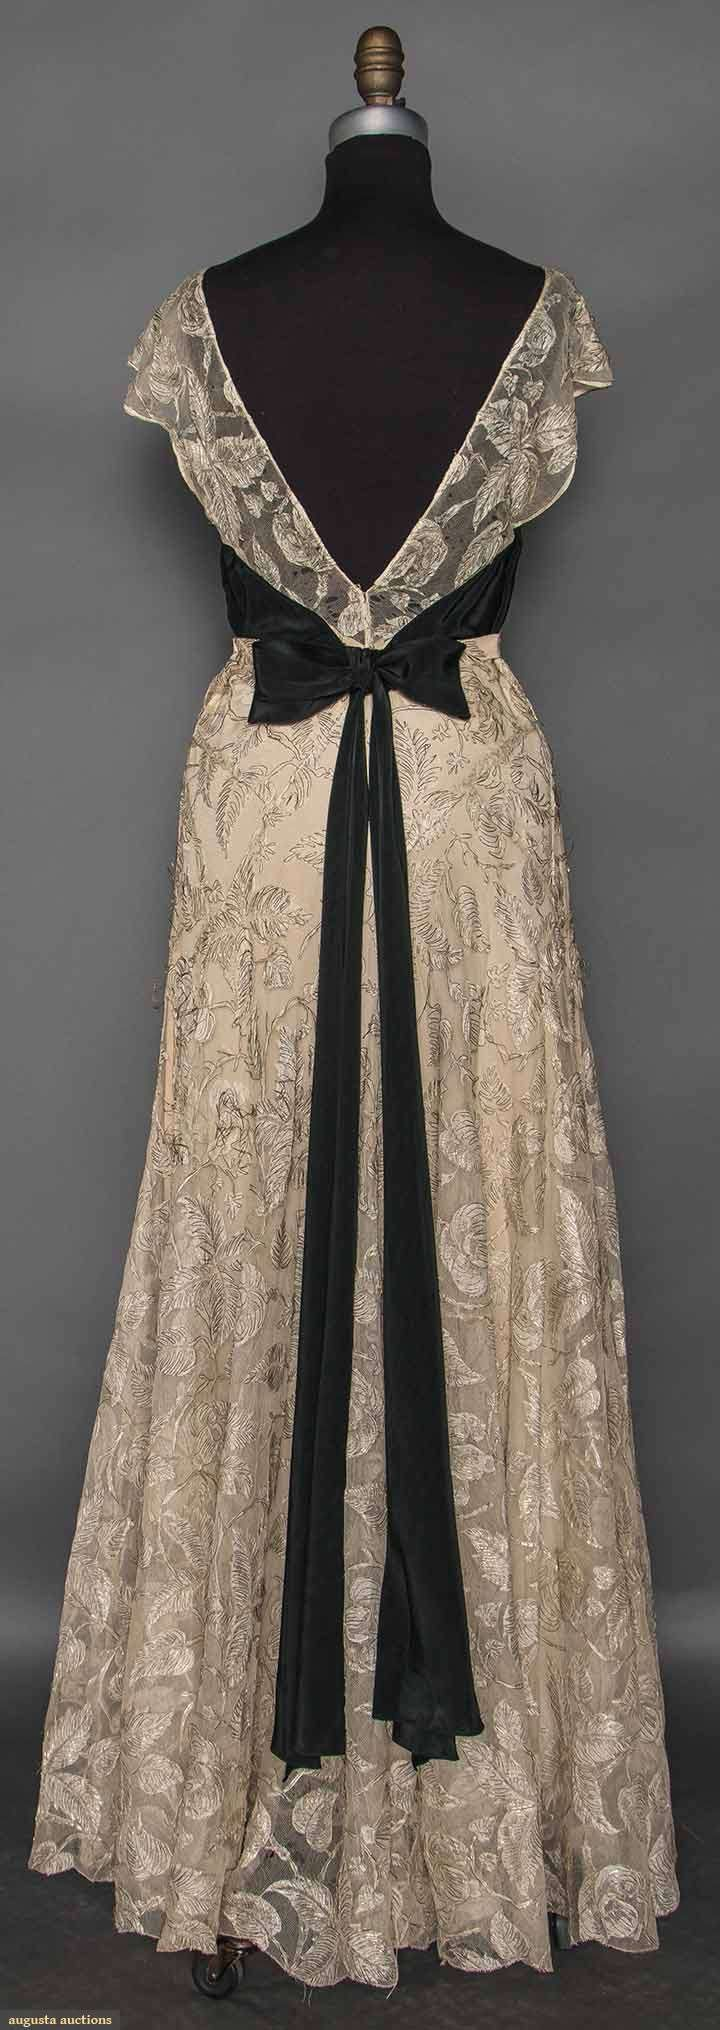 "CHANEL COUTURE LACE GOWN, c. 1935 (back view) White lace in overall foliage & blossom pattern, metallic silver thread embellishes lace motifs, sleeveless, V F&B neck, wide black silk charmeuse ribbon ties to CF bow continuing to long CB bow, attached lace belt, beige silk underslip, label ""Chanel"", tape ""26419"""